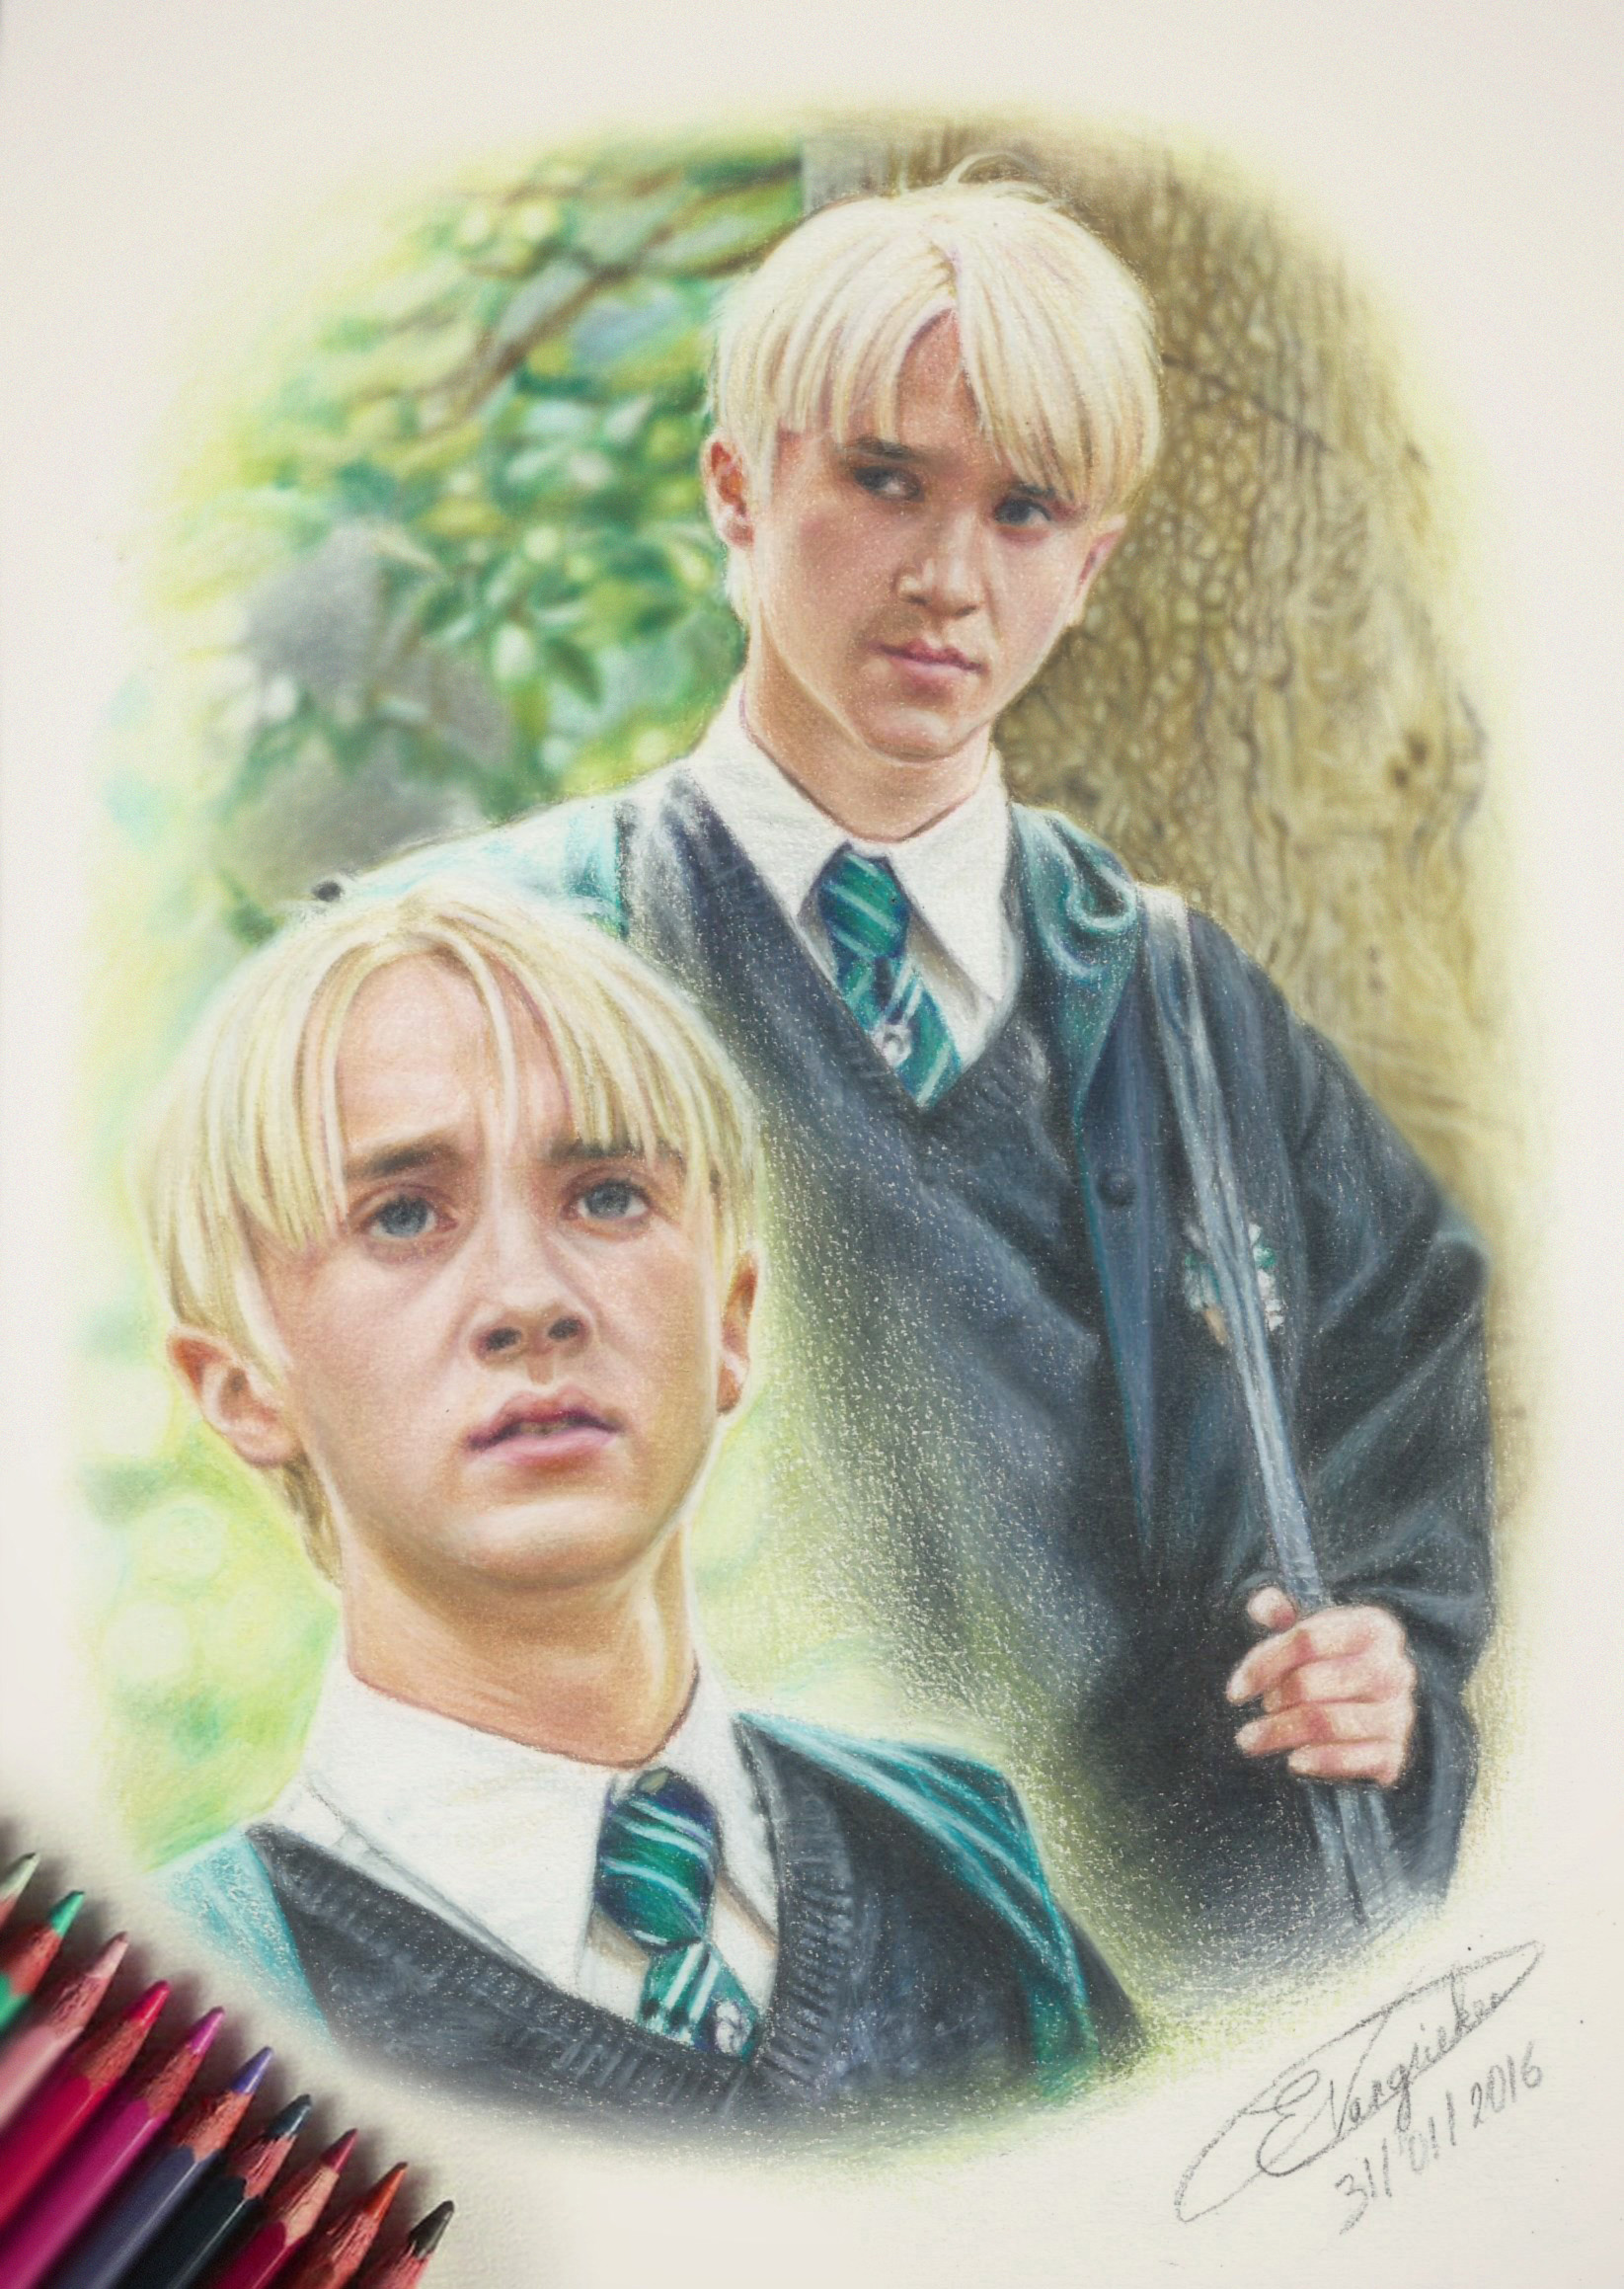 Draco Malfoy Tom Felton Drawing By Omegalomaniacx On Newgrounds